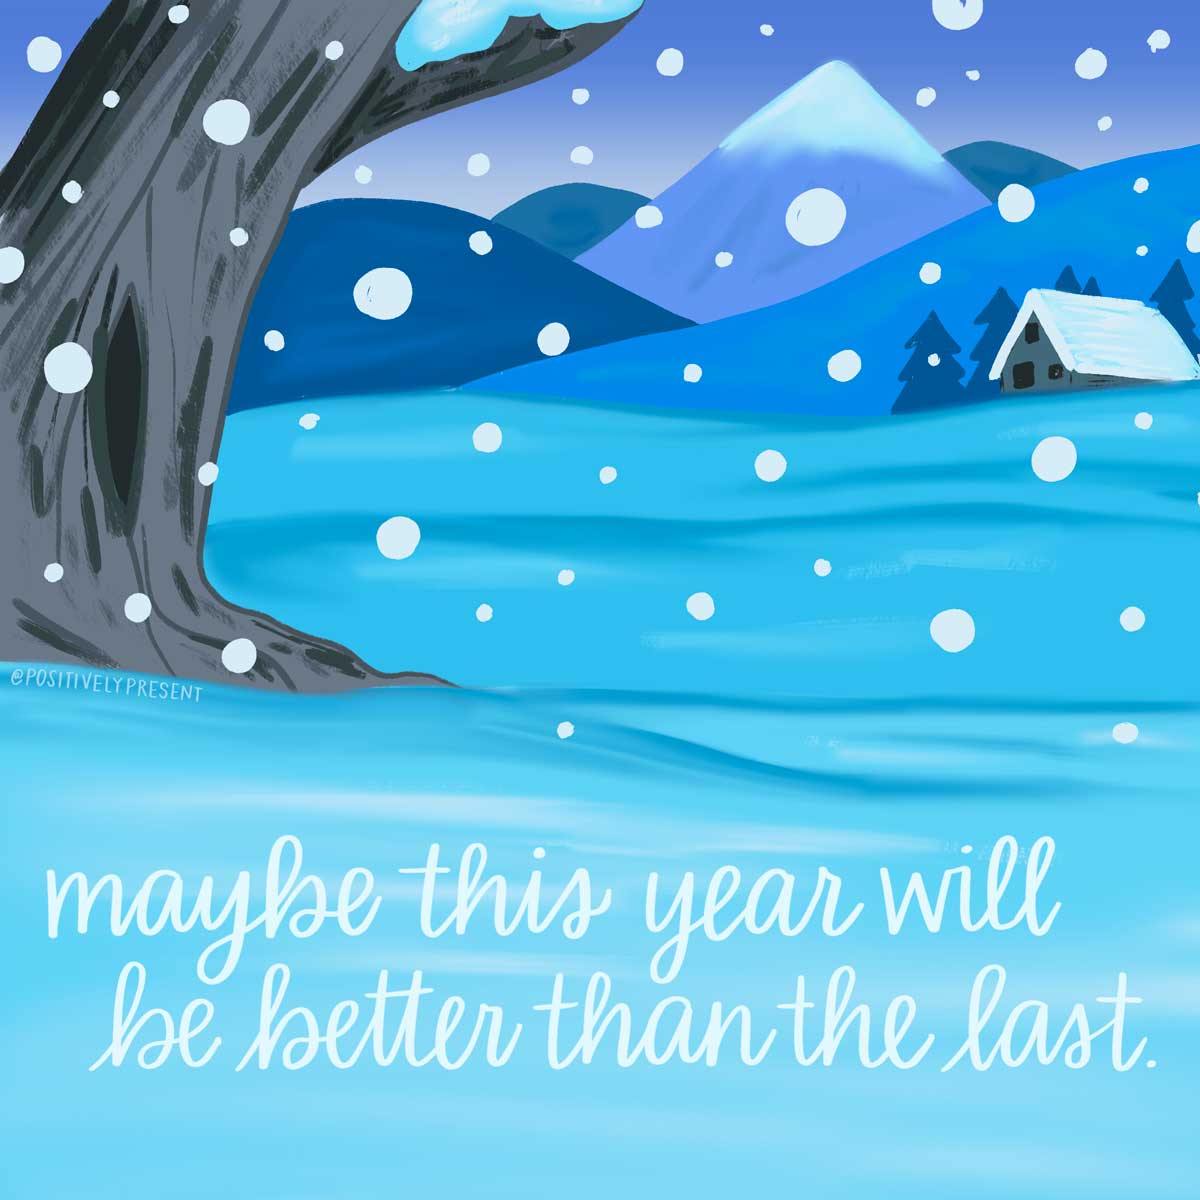 maybe new year will be better than the last quote on blue snowy art.